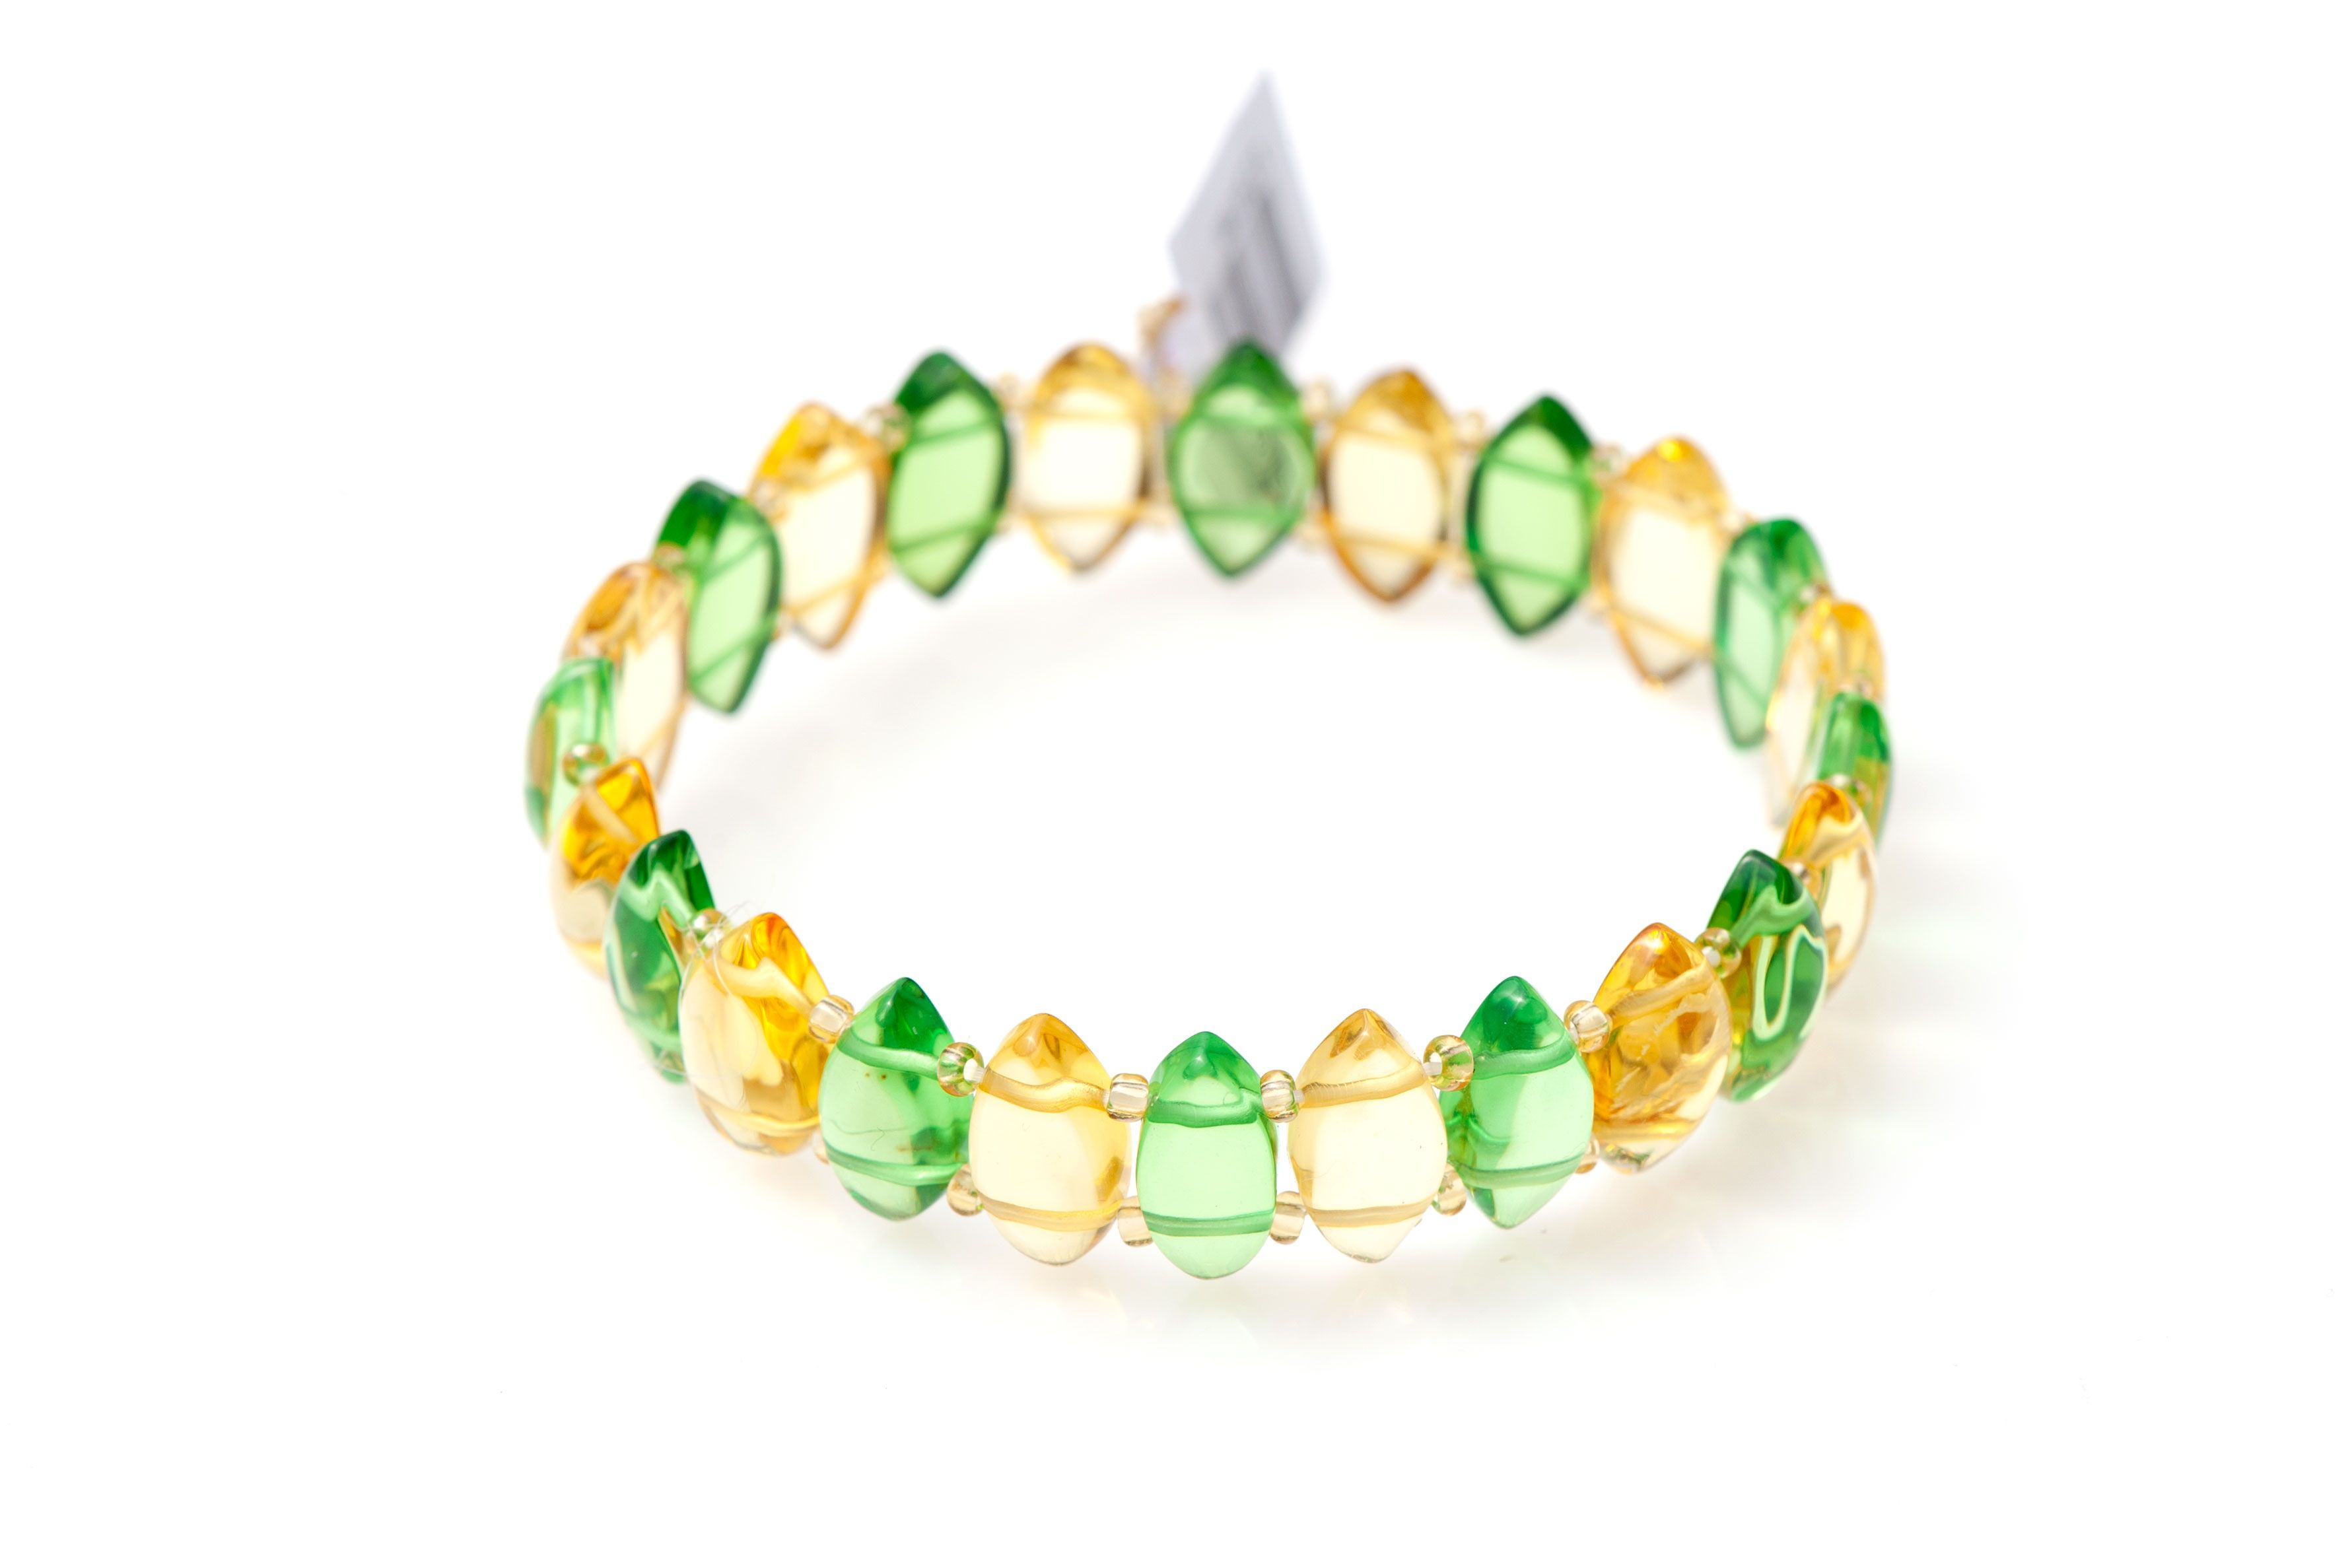 Amber Bracelet made of Caribbean stones with Marquise finish